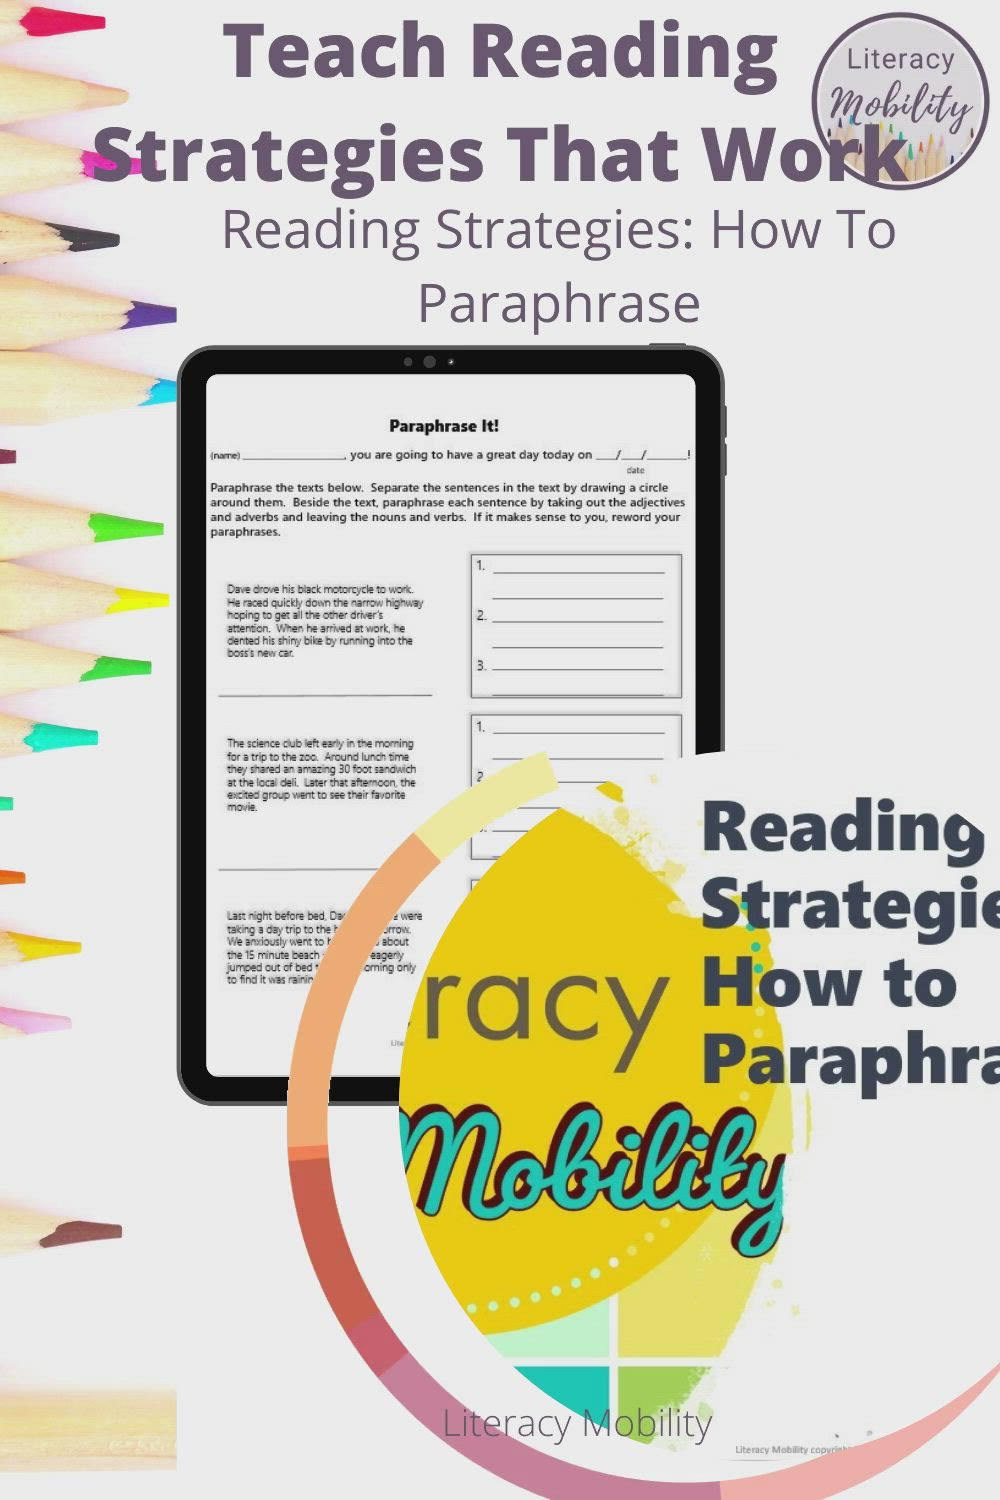 Reading Strategie How To Paraphrase Powerpoint And Worksheet Set Video Skill Upper Elementary Resources Literacy Standard Paraphrasing